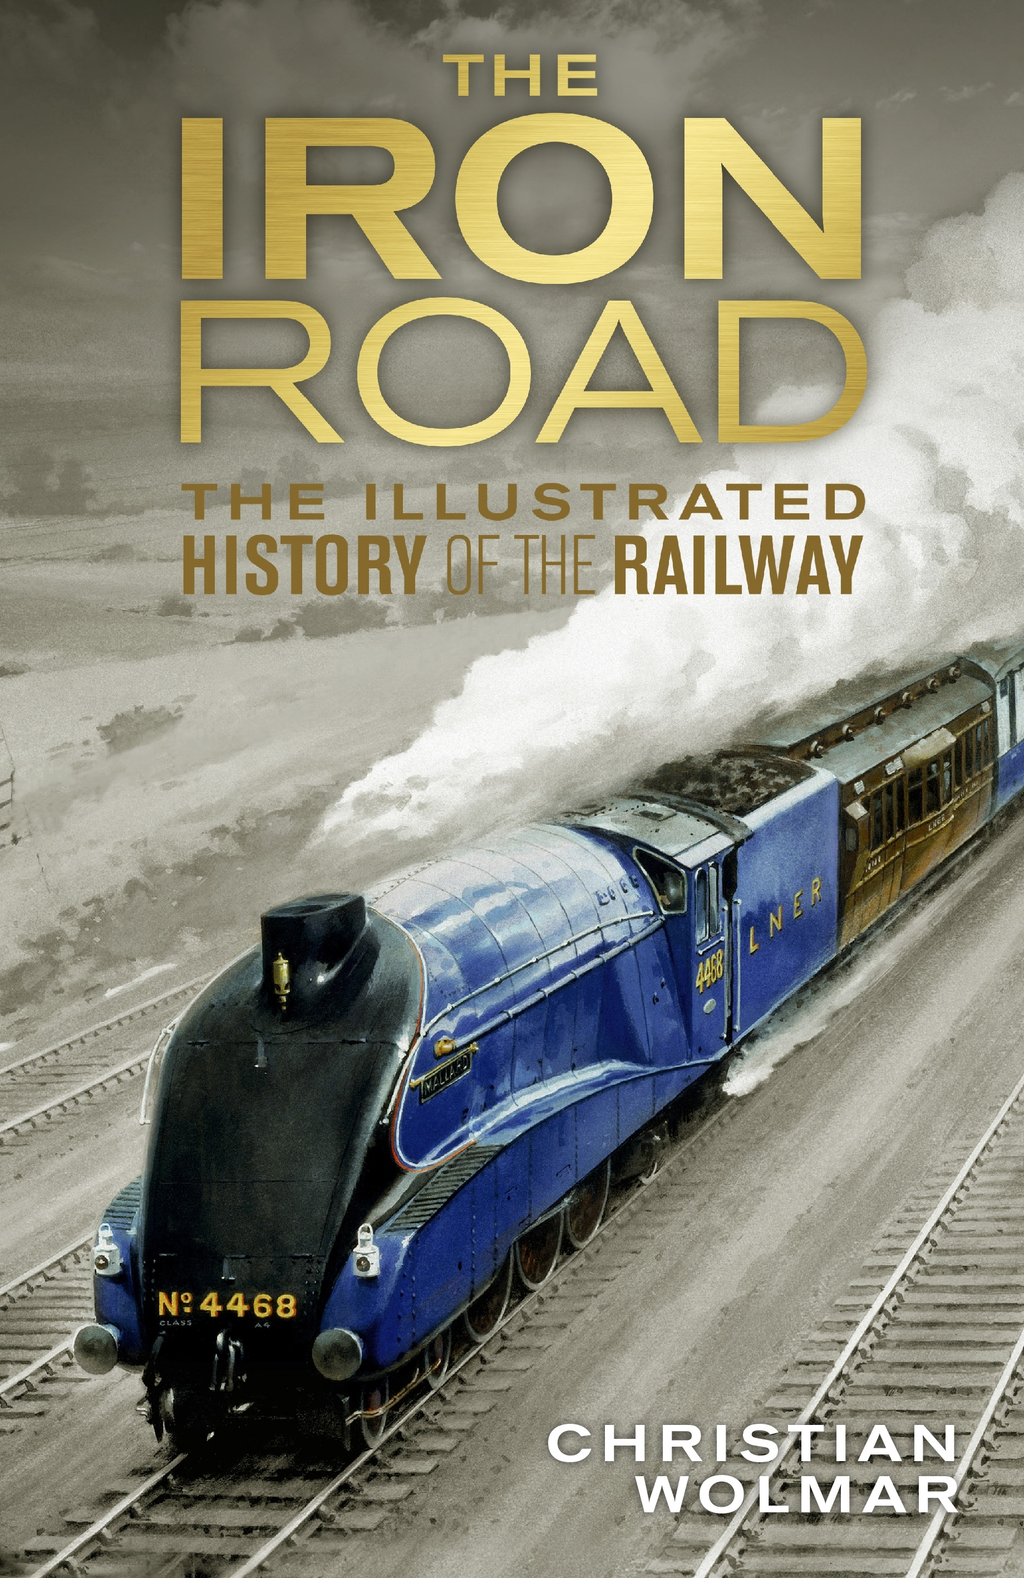 The Iron Road The Illustrated History of Railways